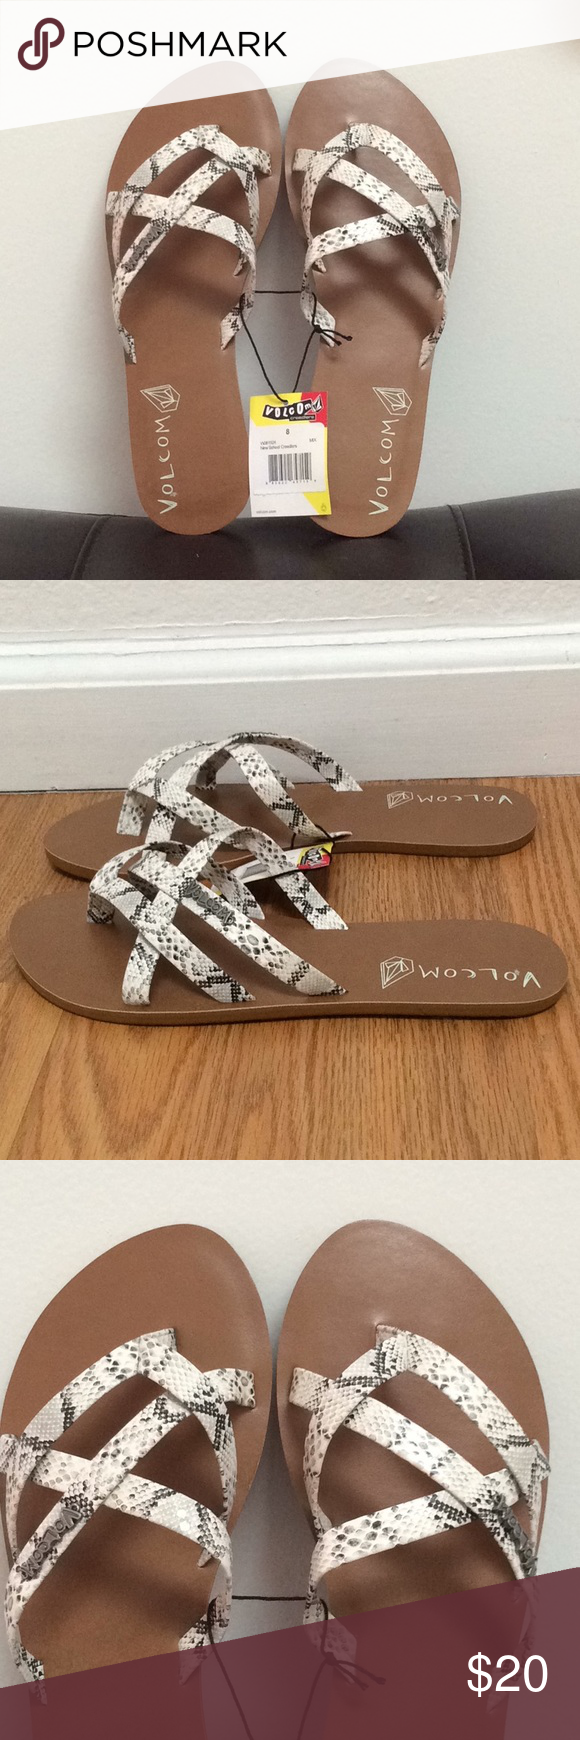 116156e139cb Volcom New School Creedler sandal. Off-white black snake print. Size 8.  Great for pool or beach. Volcom Shoes Sandals